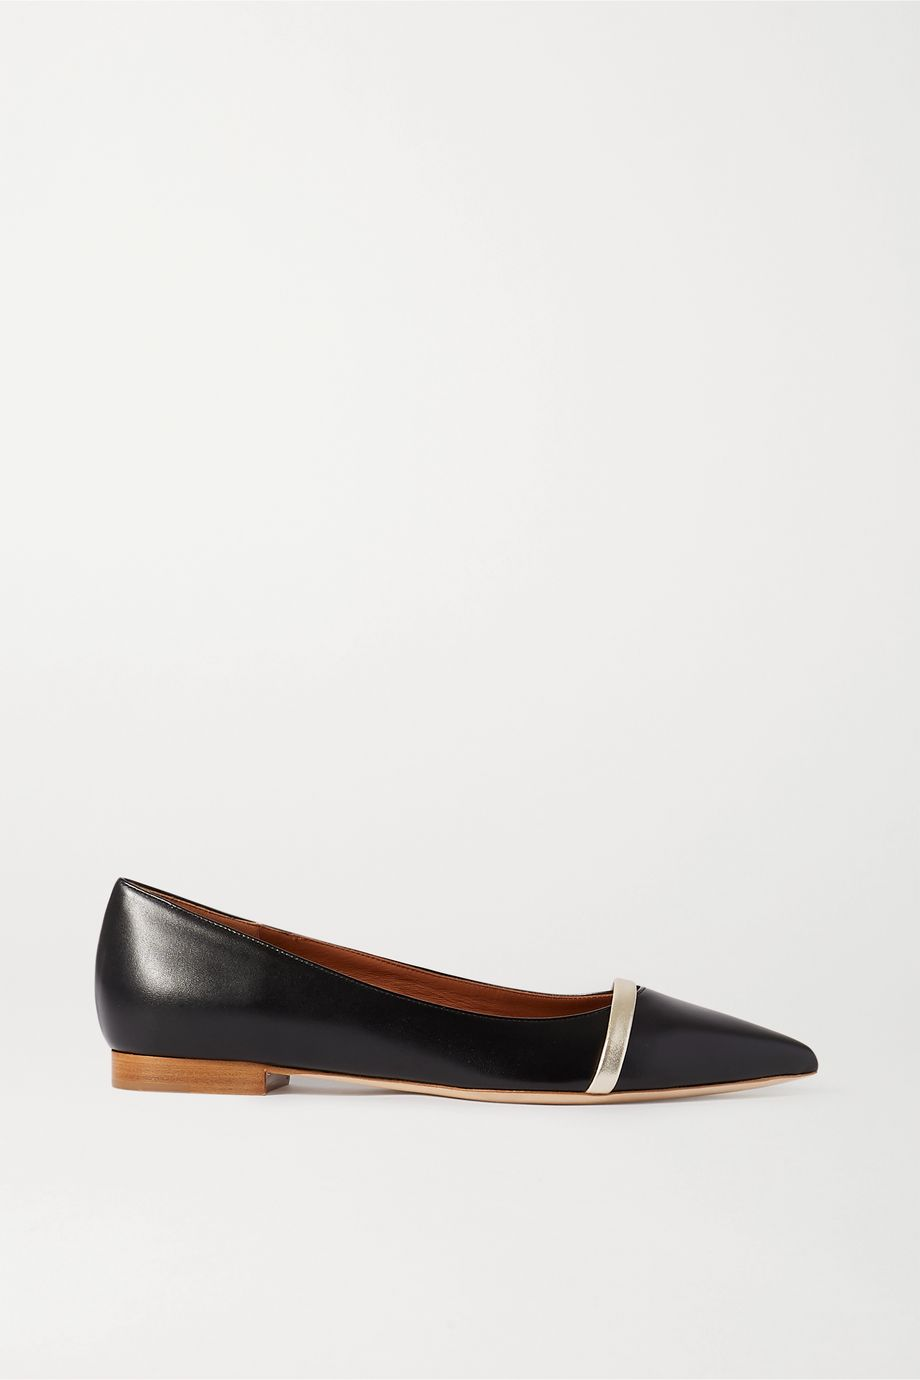 Malone Souliers Maybelle metallic-trimmed leather point-toe flats